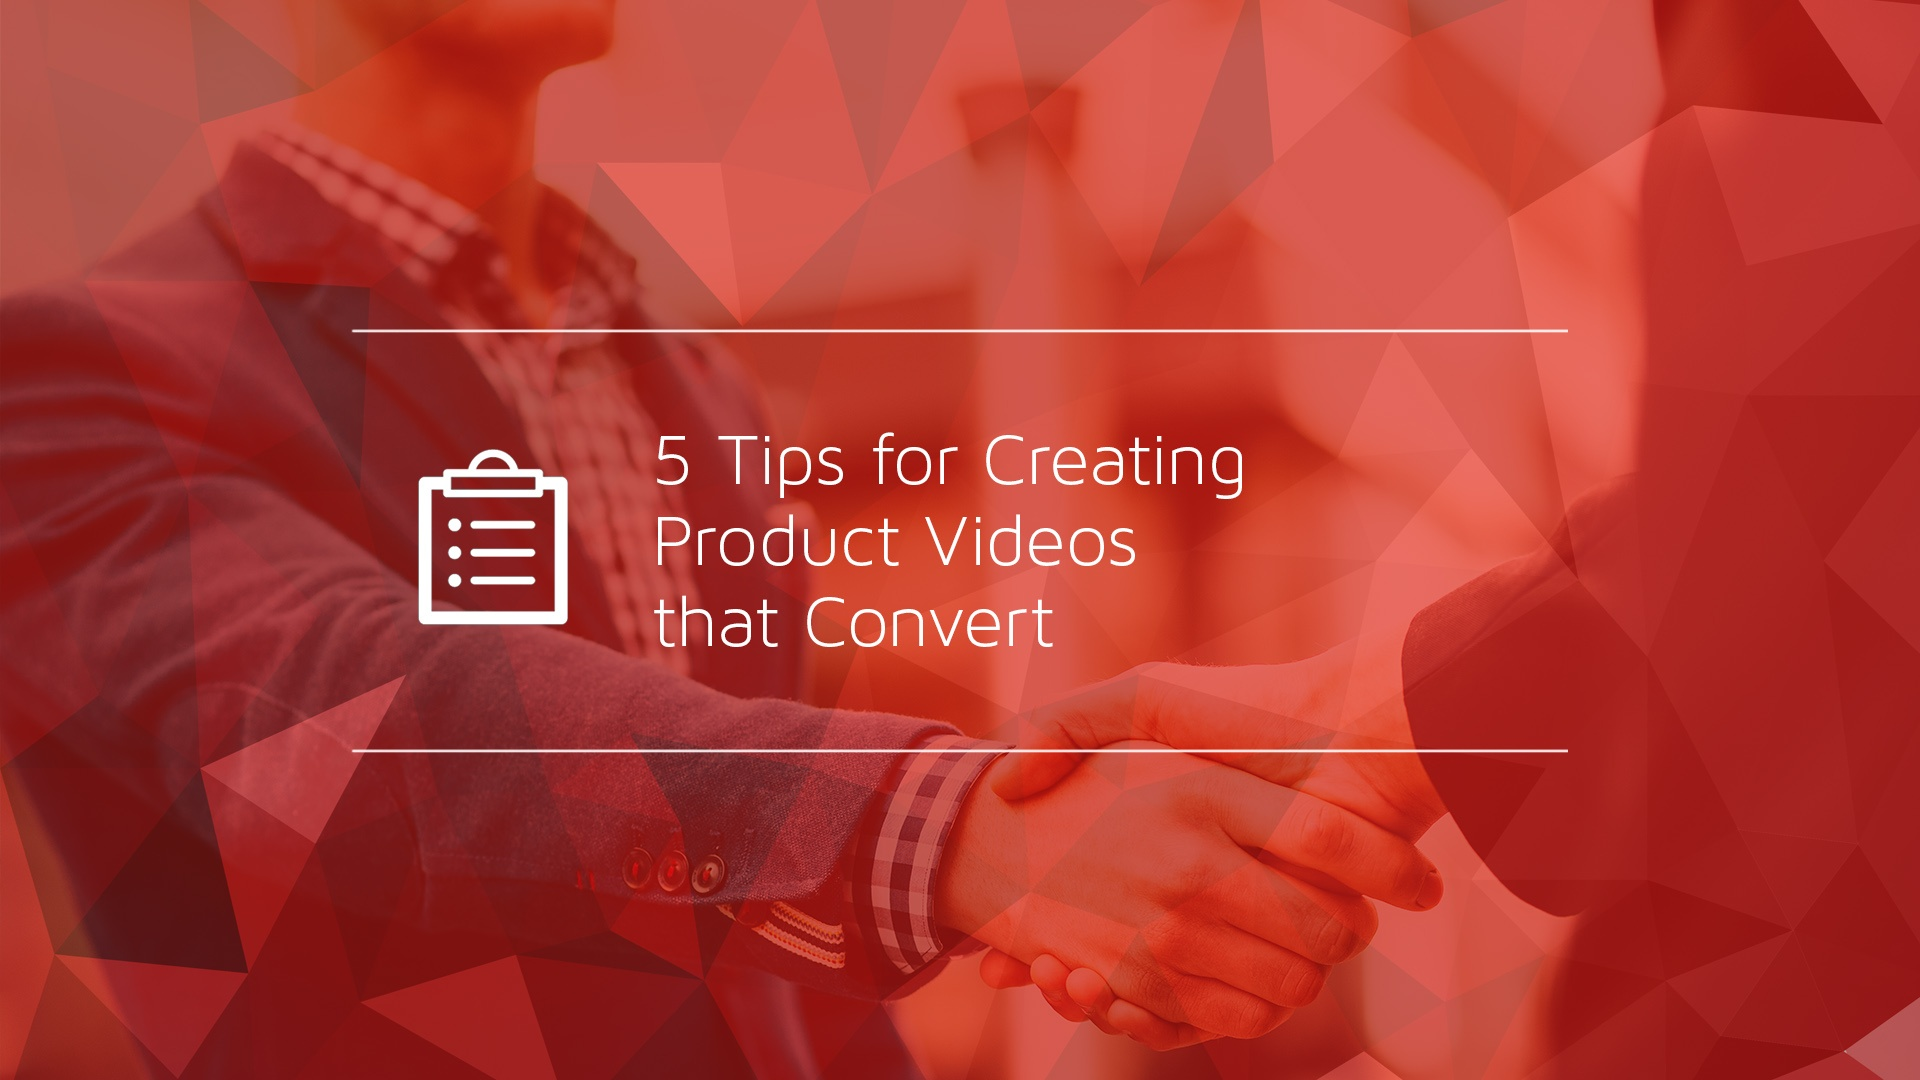 5 Tips for Creating Product Videos that Convert.jpg